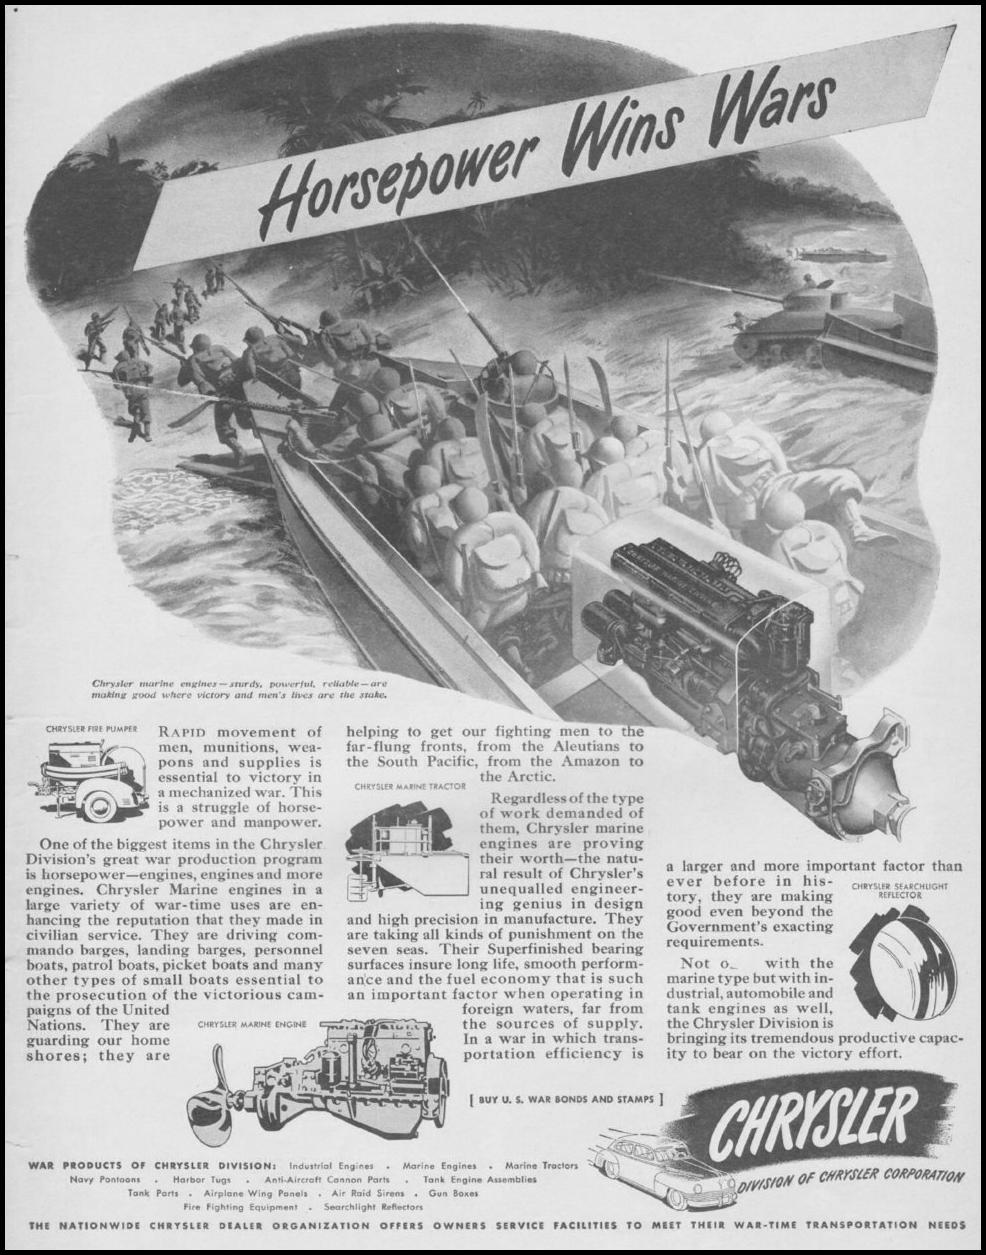 CHRYSLER AUTOMOBILES